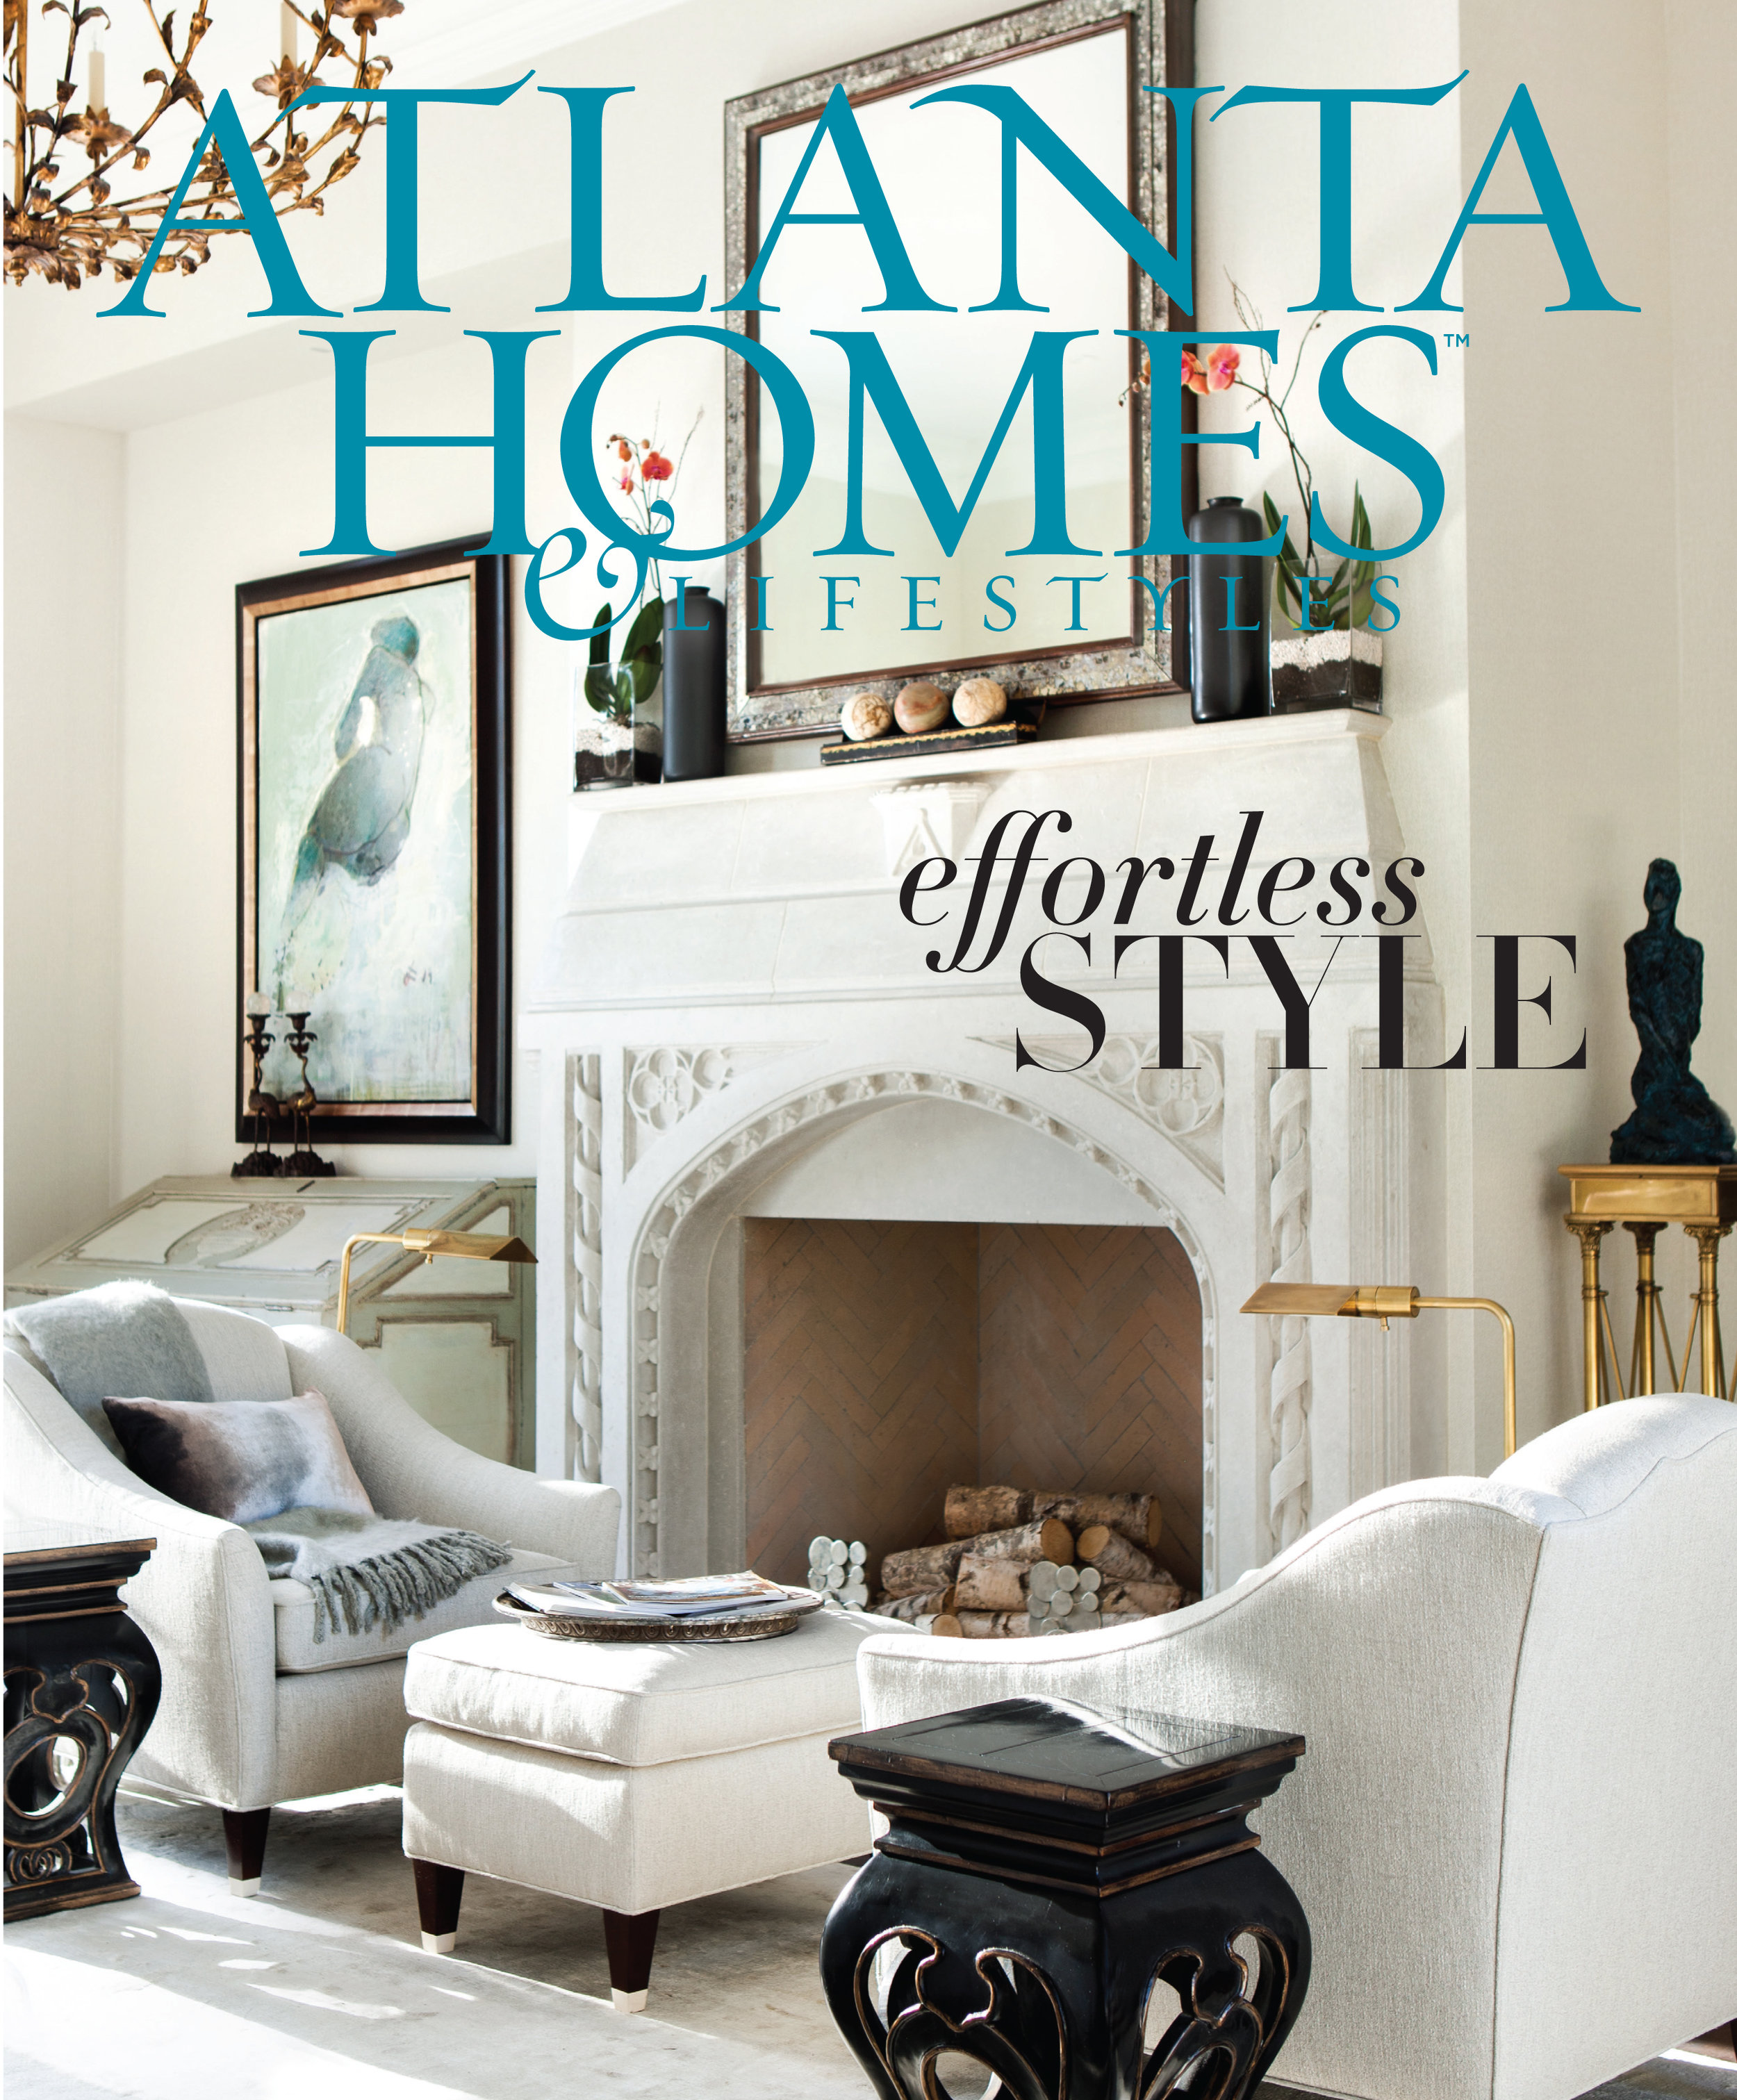 The cover of one of my favorite rooms at an    Atlanta Homes & Lifestyles    Showhouse. Also, one of my favorite magazines - ideas and inspiration galore! (full disclosure, I also work with them - being surrounded by so many beautiful things is dreamy!)